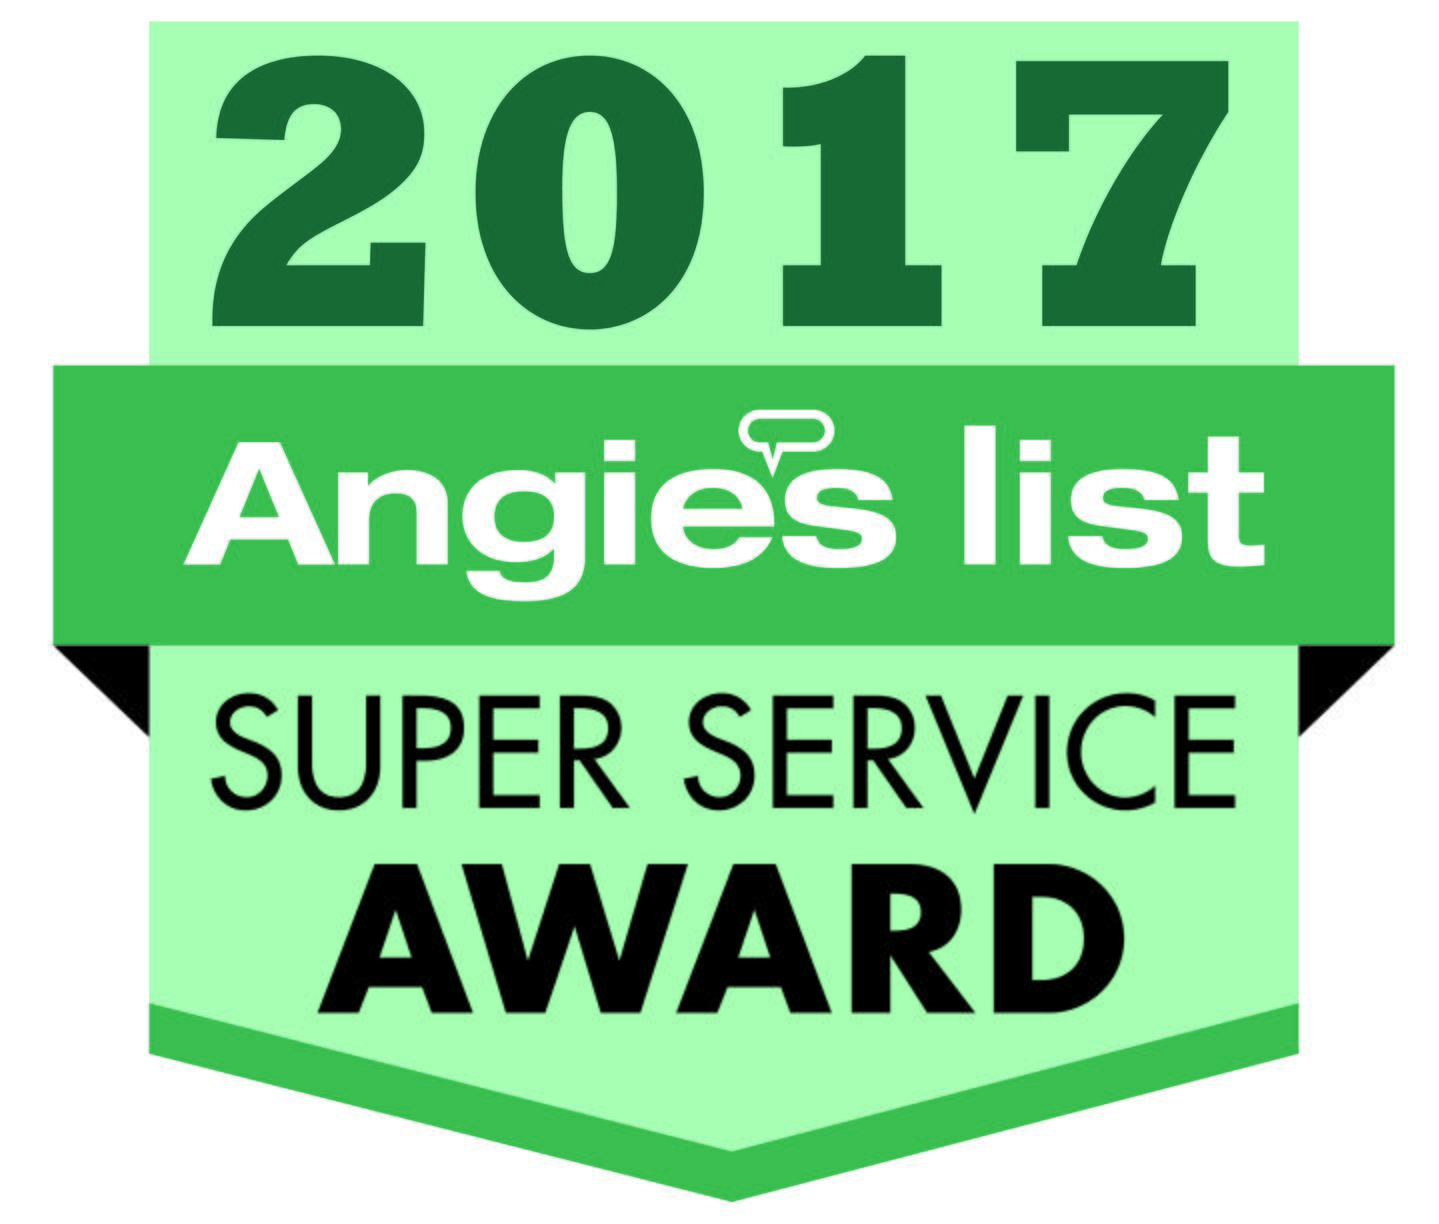 Angie's List Super Service Award for 2017